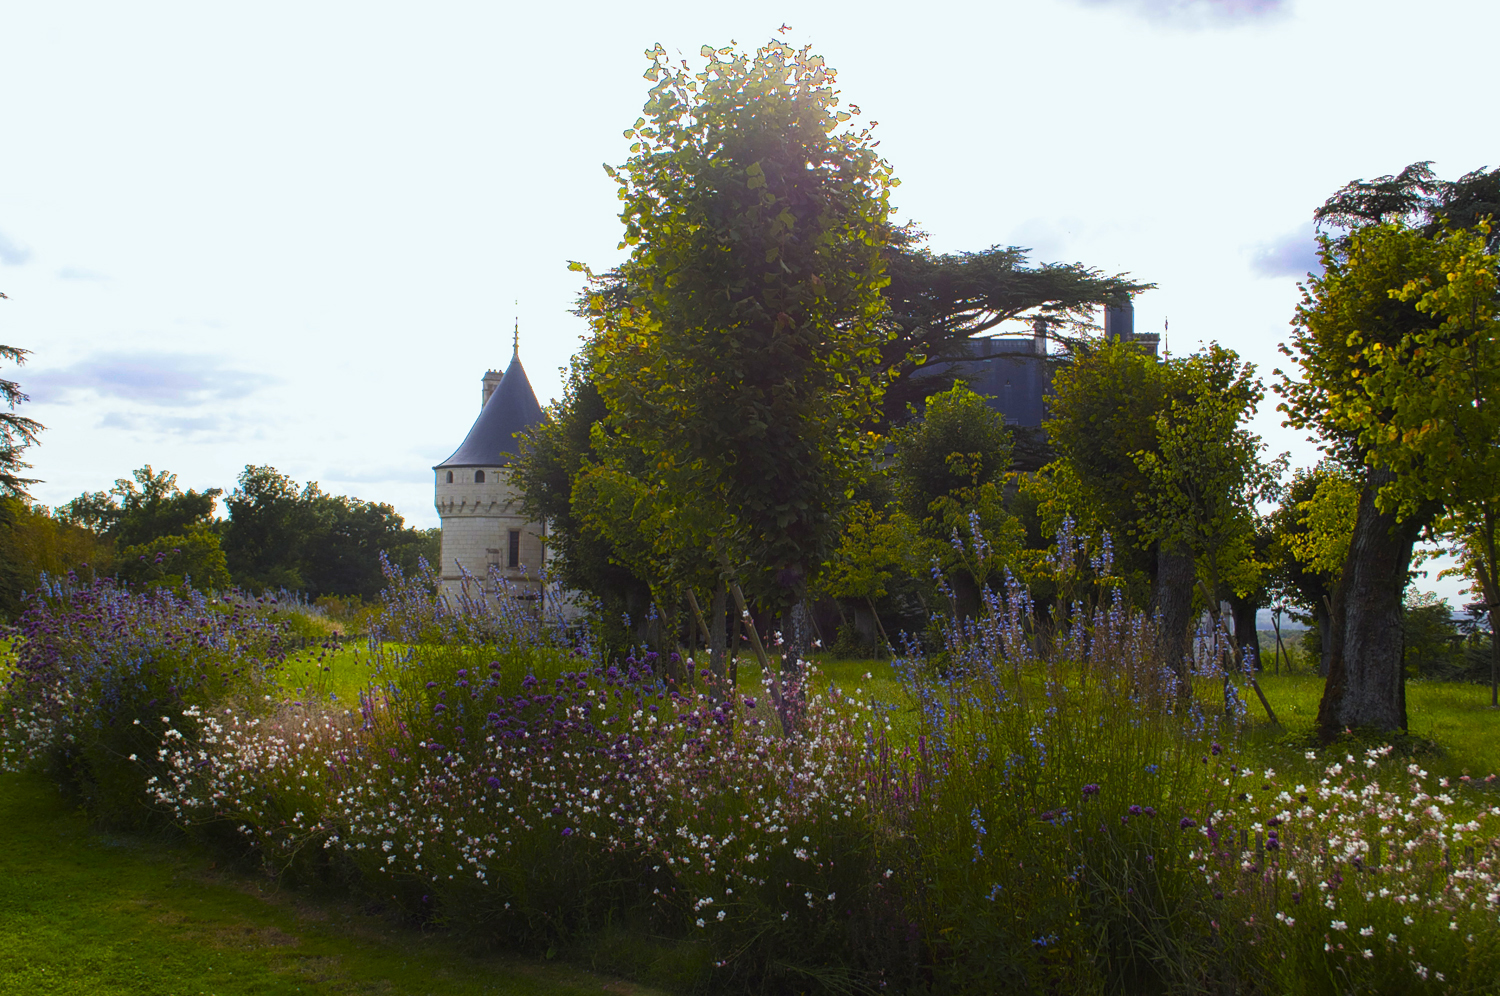 Flower borders decorate the enormous expanse of lawn around the château